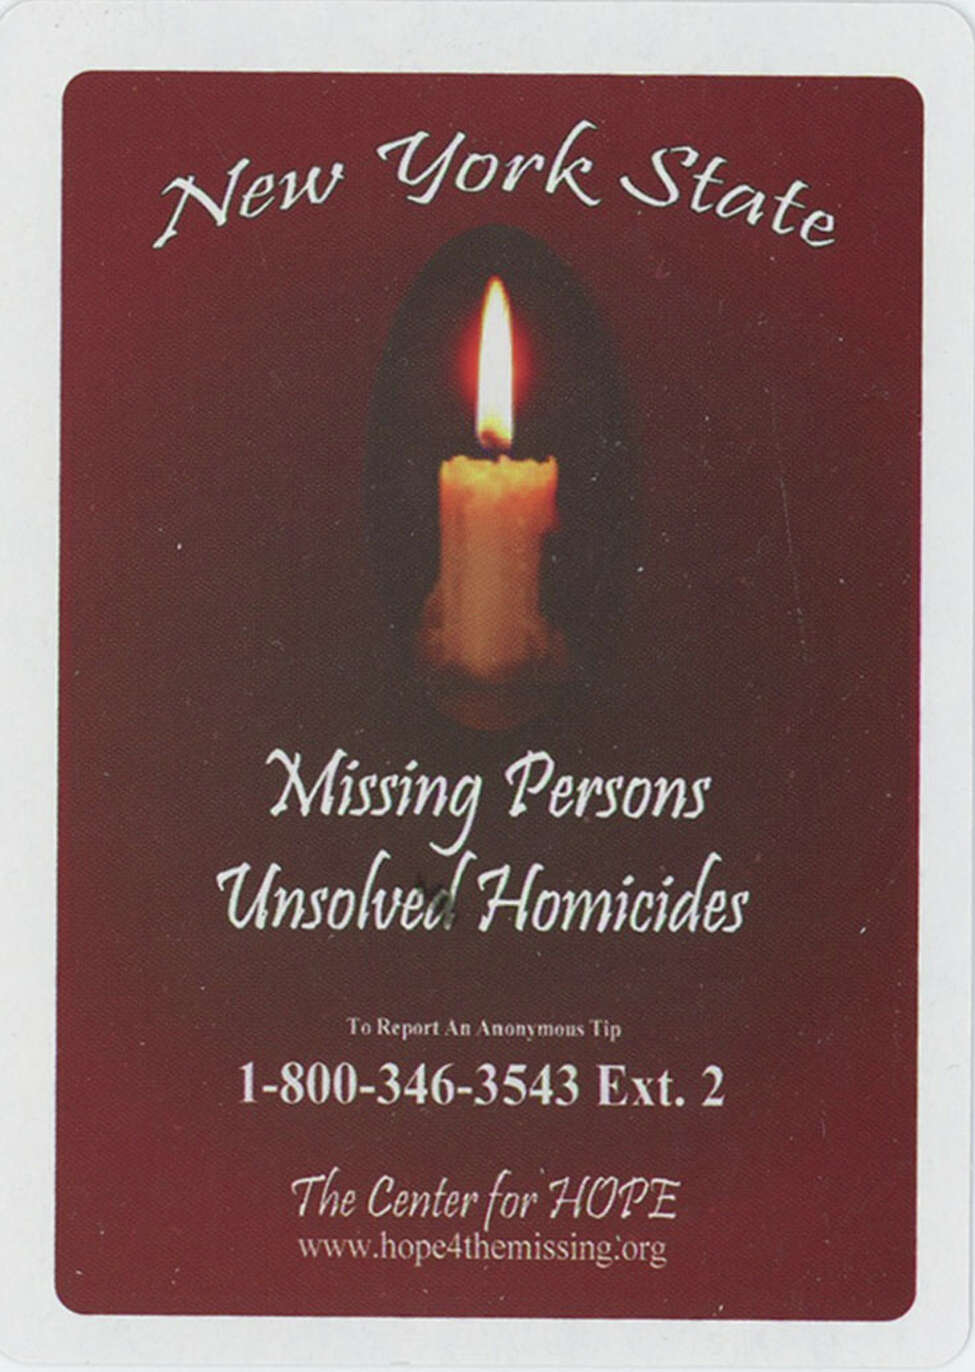 The New York State Missing Persons and Unsolved Homicides deck of playing cards is a project of the Ballston Spa-based Center for Hope. The cards are distributed in all of the state's 57 county jails, as well as in the offices of county district attorneys and probation officers.